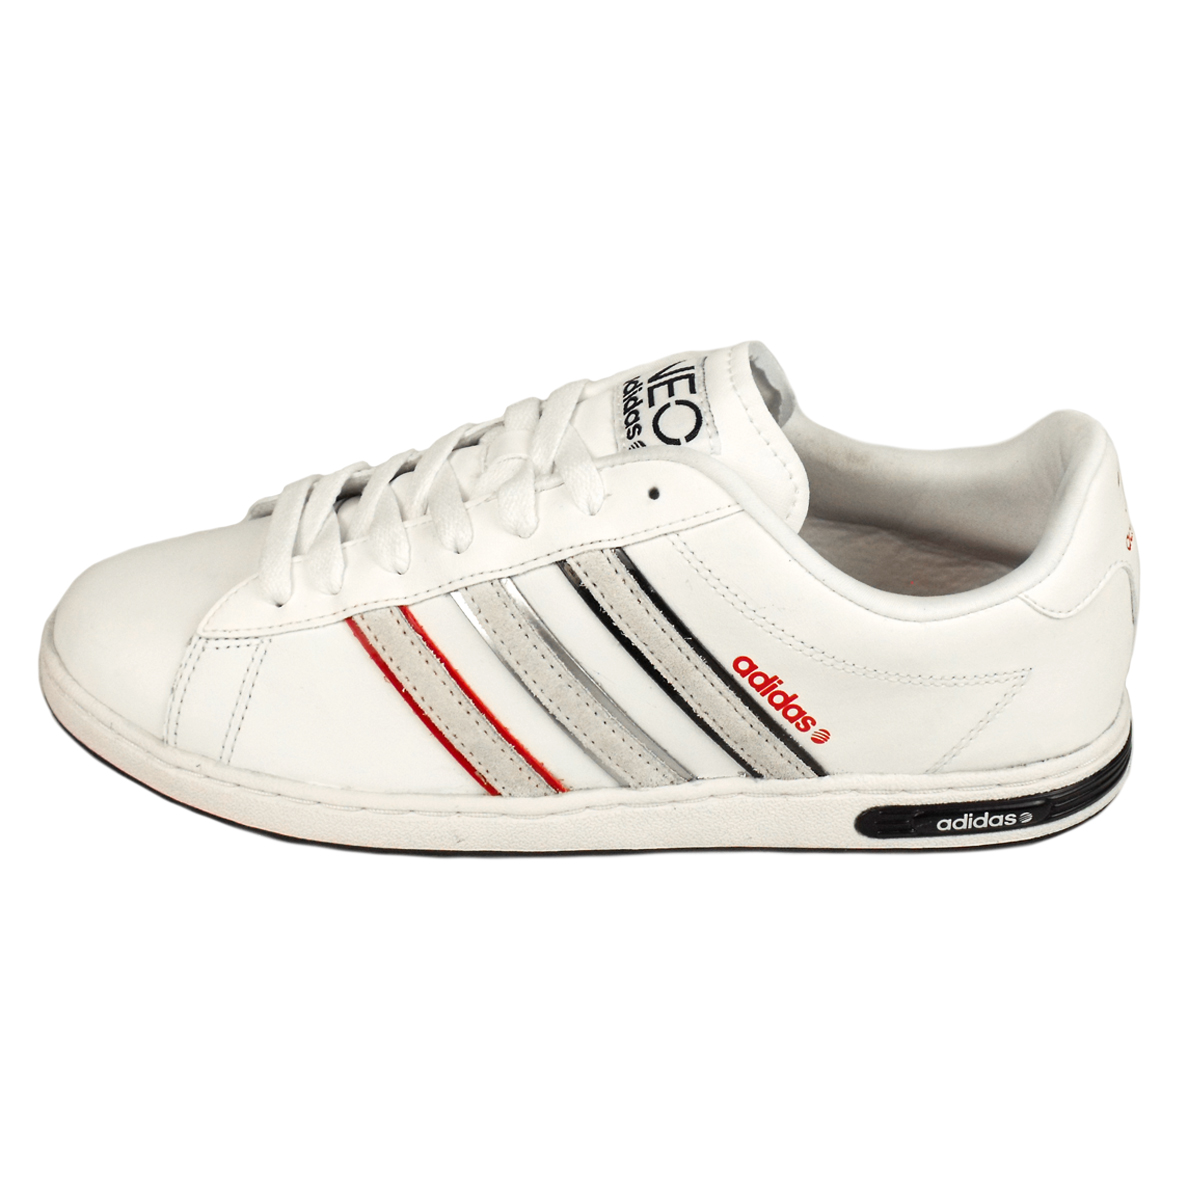 Neo Adidas: Adidas Mens Shoes Derby II Neo Label Trainers White